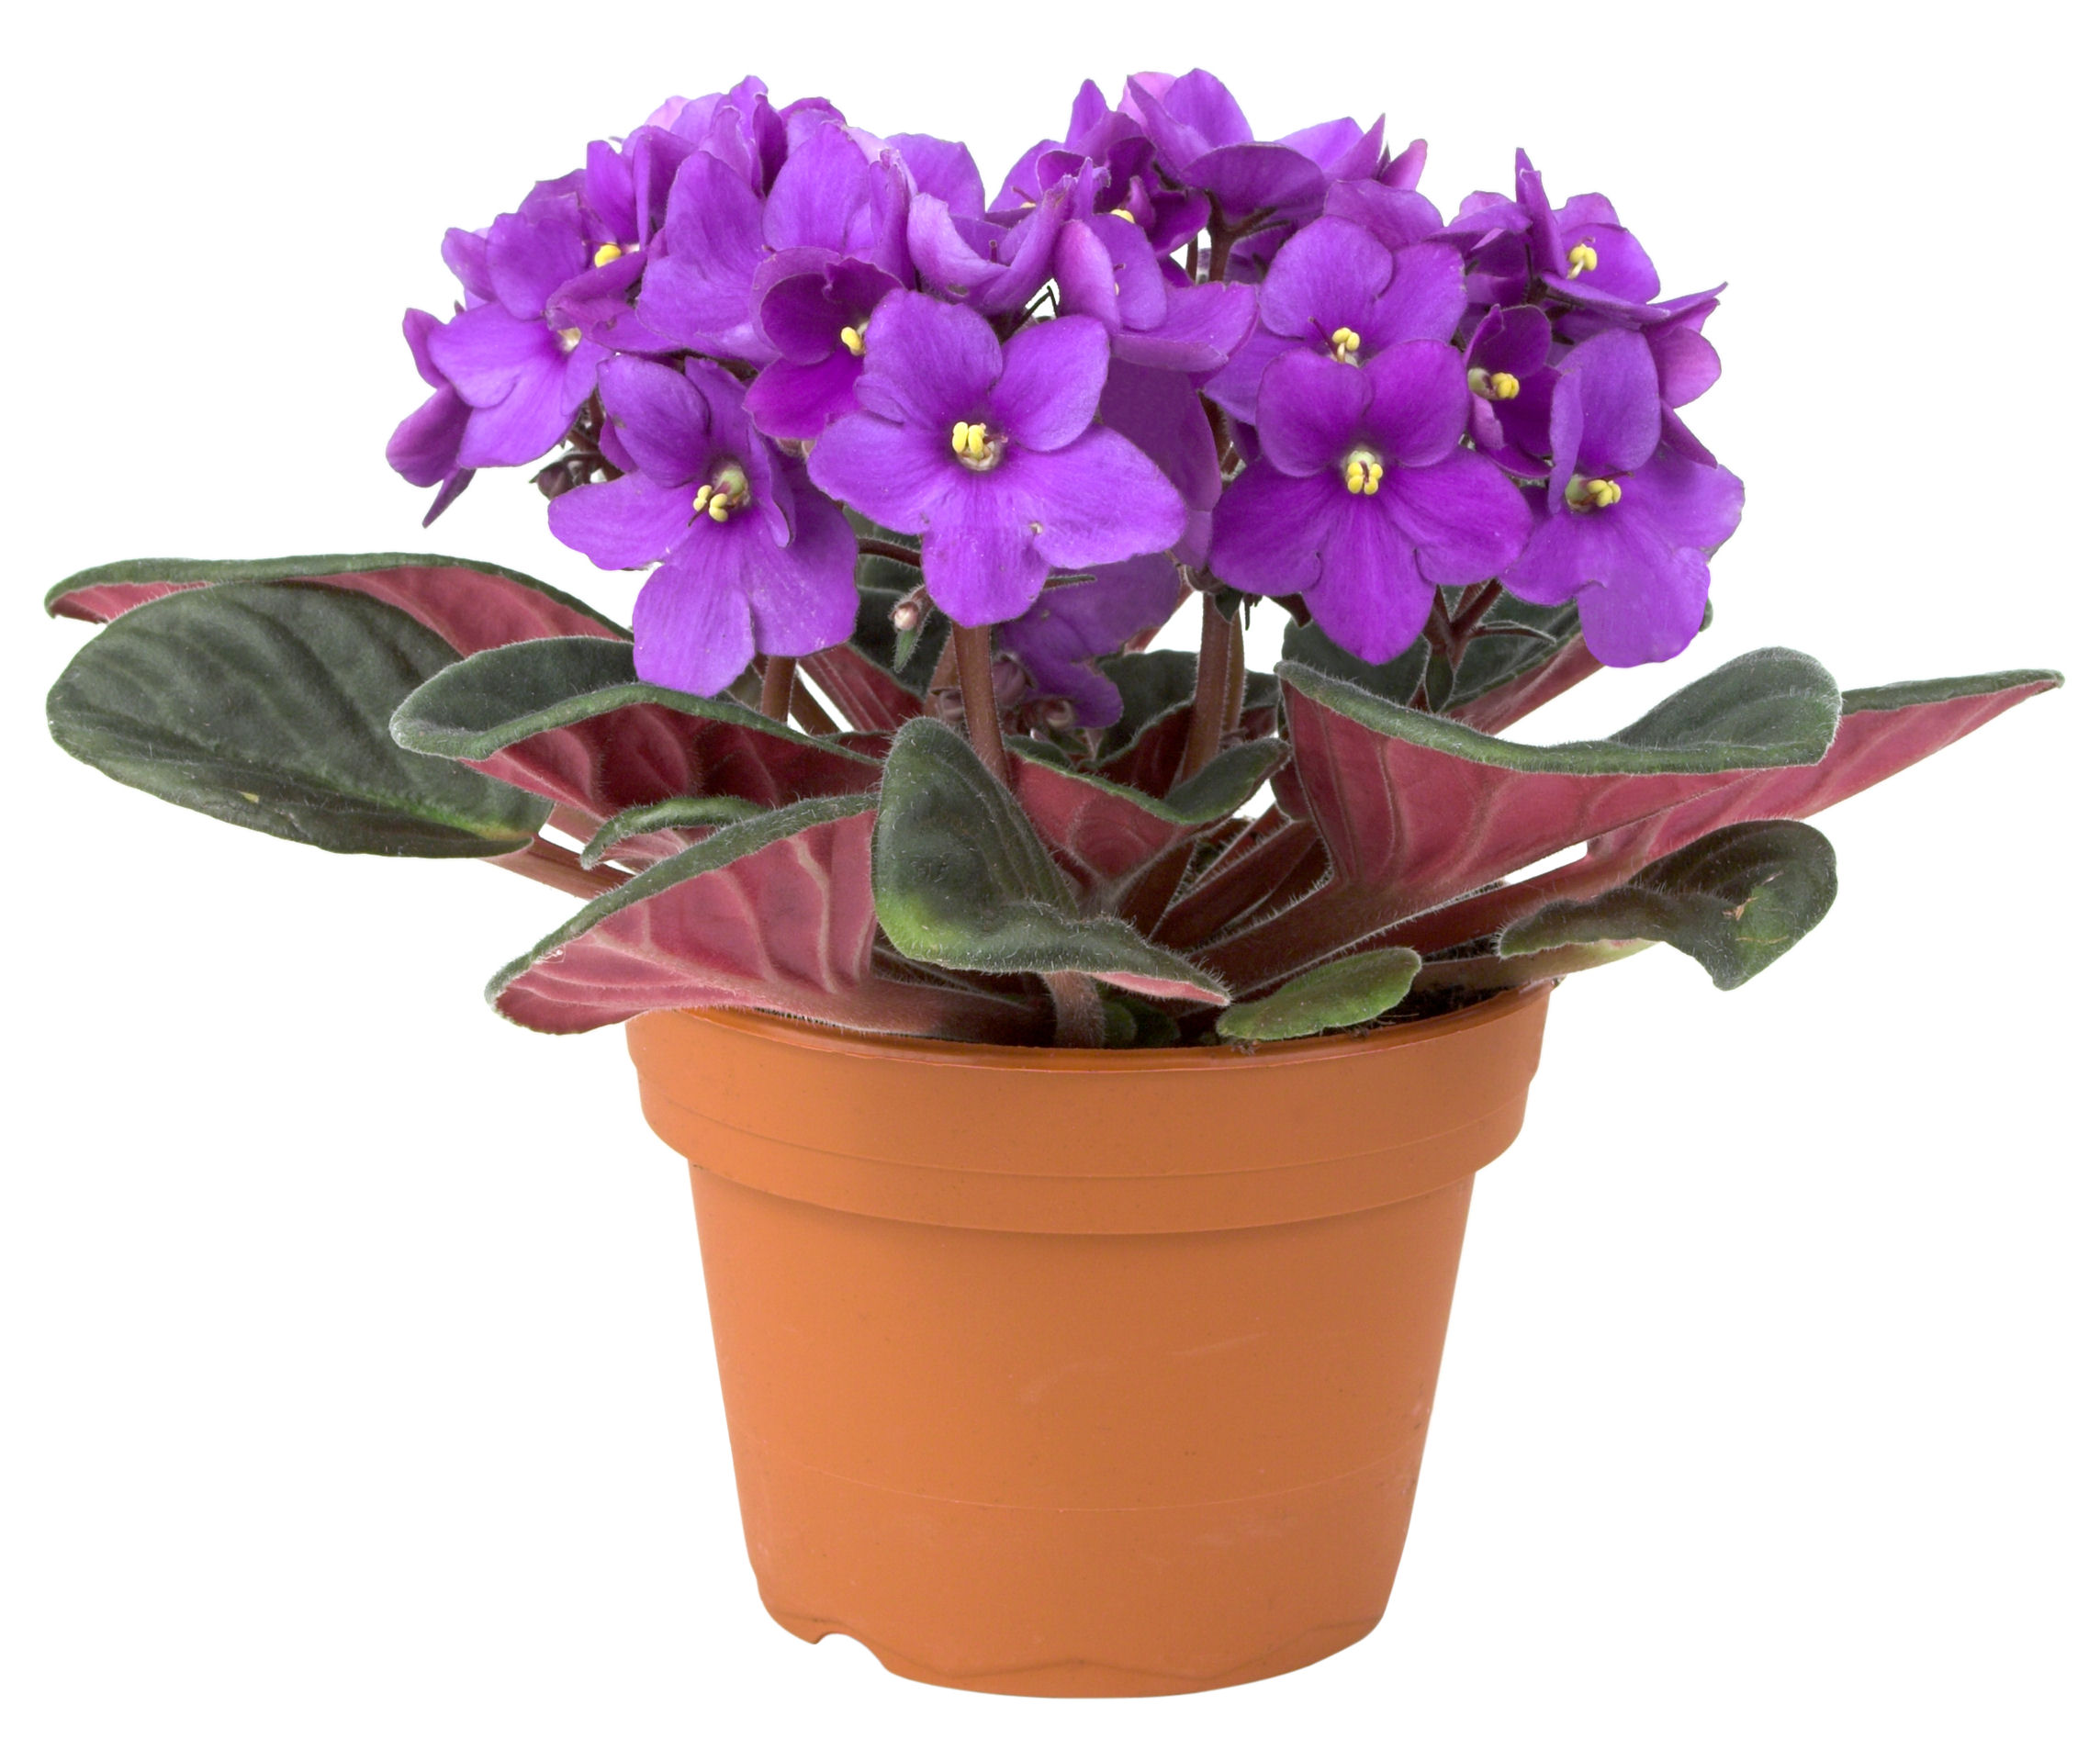 Guest Post: Best Oxygen-Producing Indoor Plants   Grower Direct ... for potted plants and flowers png  181obs